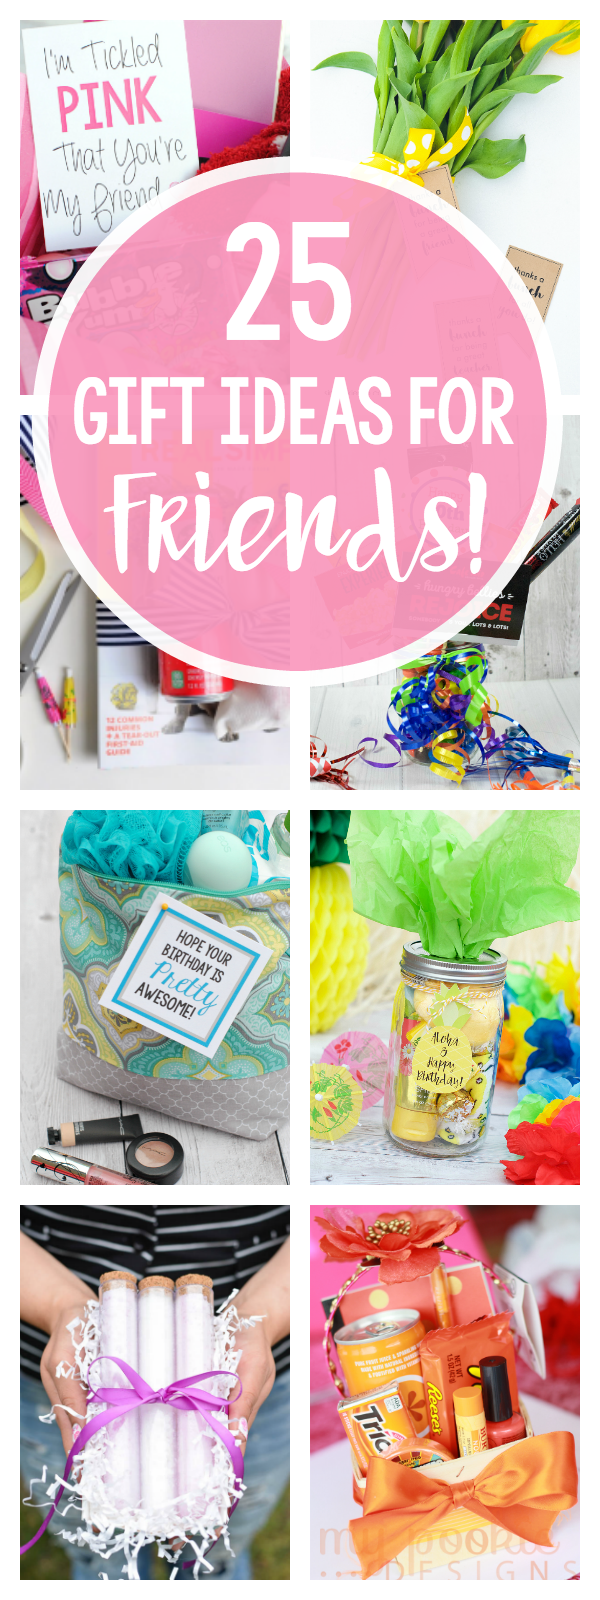 Cute Gift Ideas for Best Friends for All Occasions! Birthdays, Thank You, Holidays, Just Because & More. So many fun gift ideas for all occasions. #fungifts #giftideas #giftsforfriends #gifts